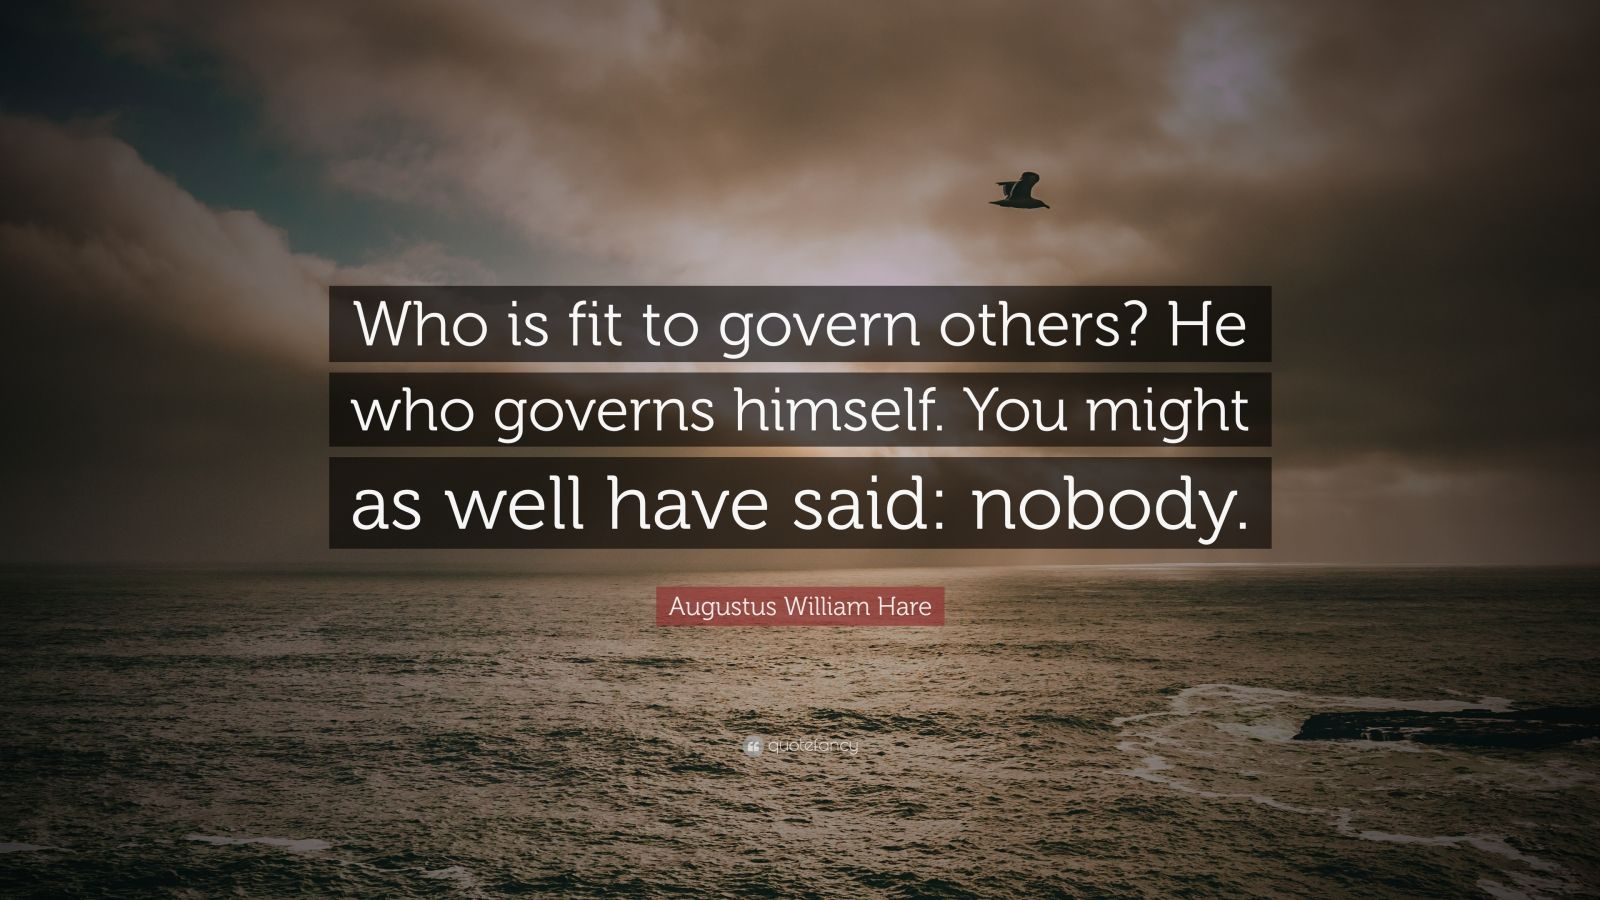 """Augustus William Hare Quote: """"Who is fit to govern others? He who governs himself. You might as well have said: nobody."""""""